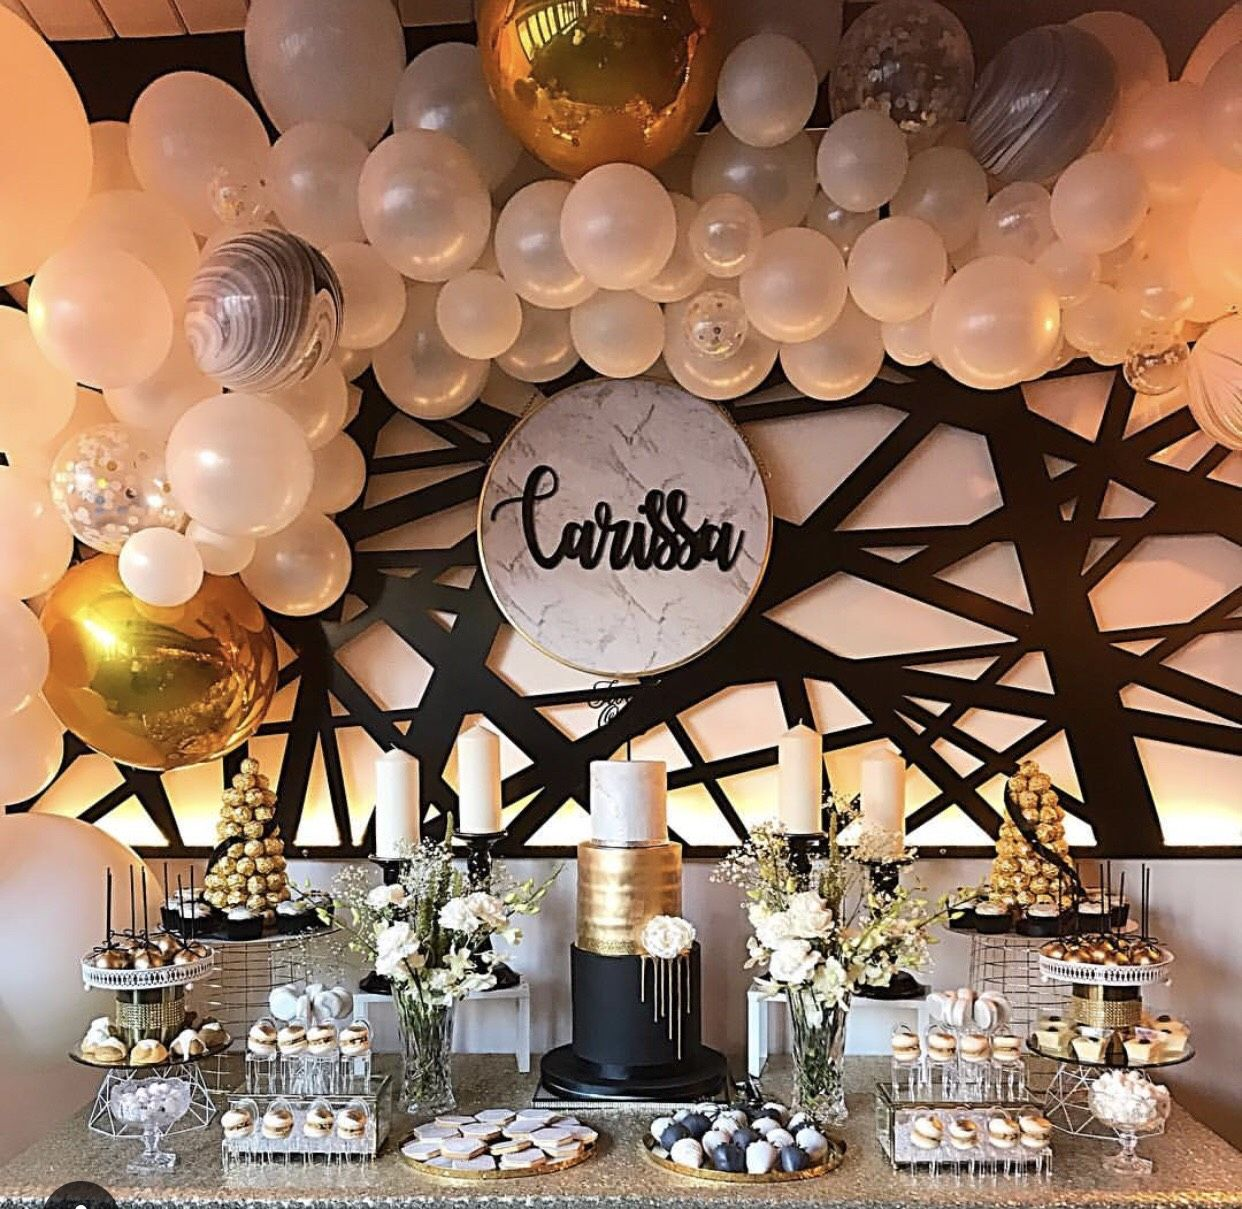 21st Birthday Dessert Table And Balloon Backdrop By Stylish